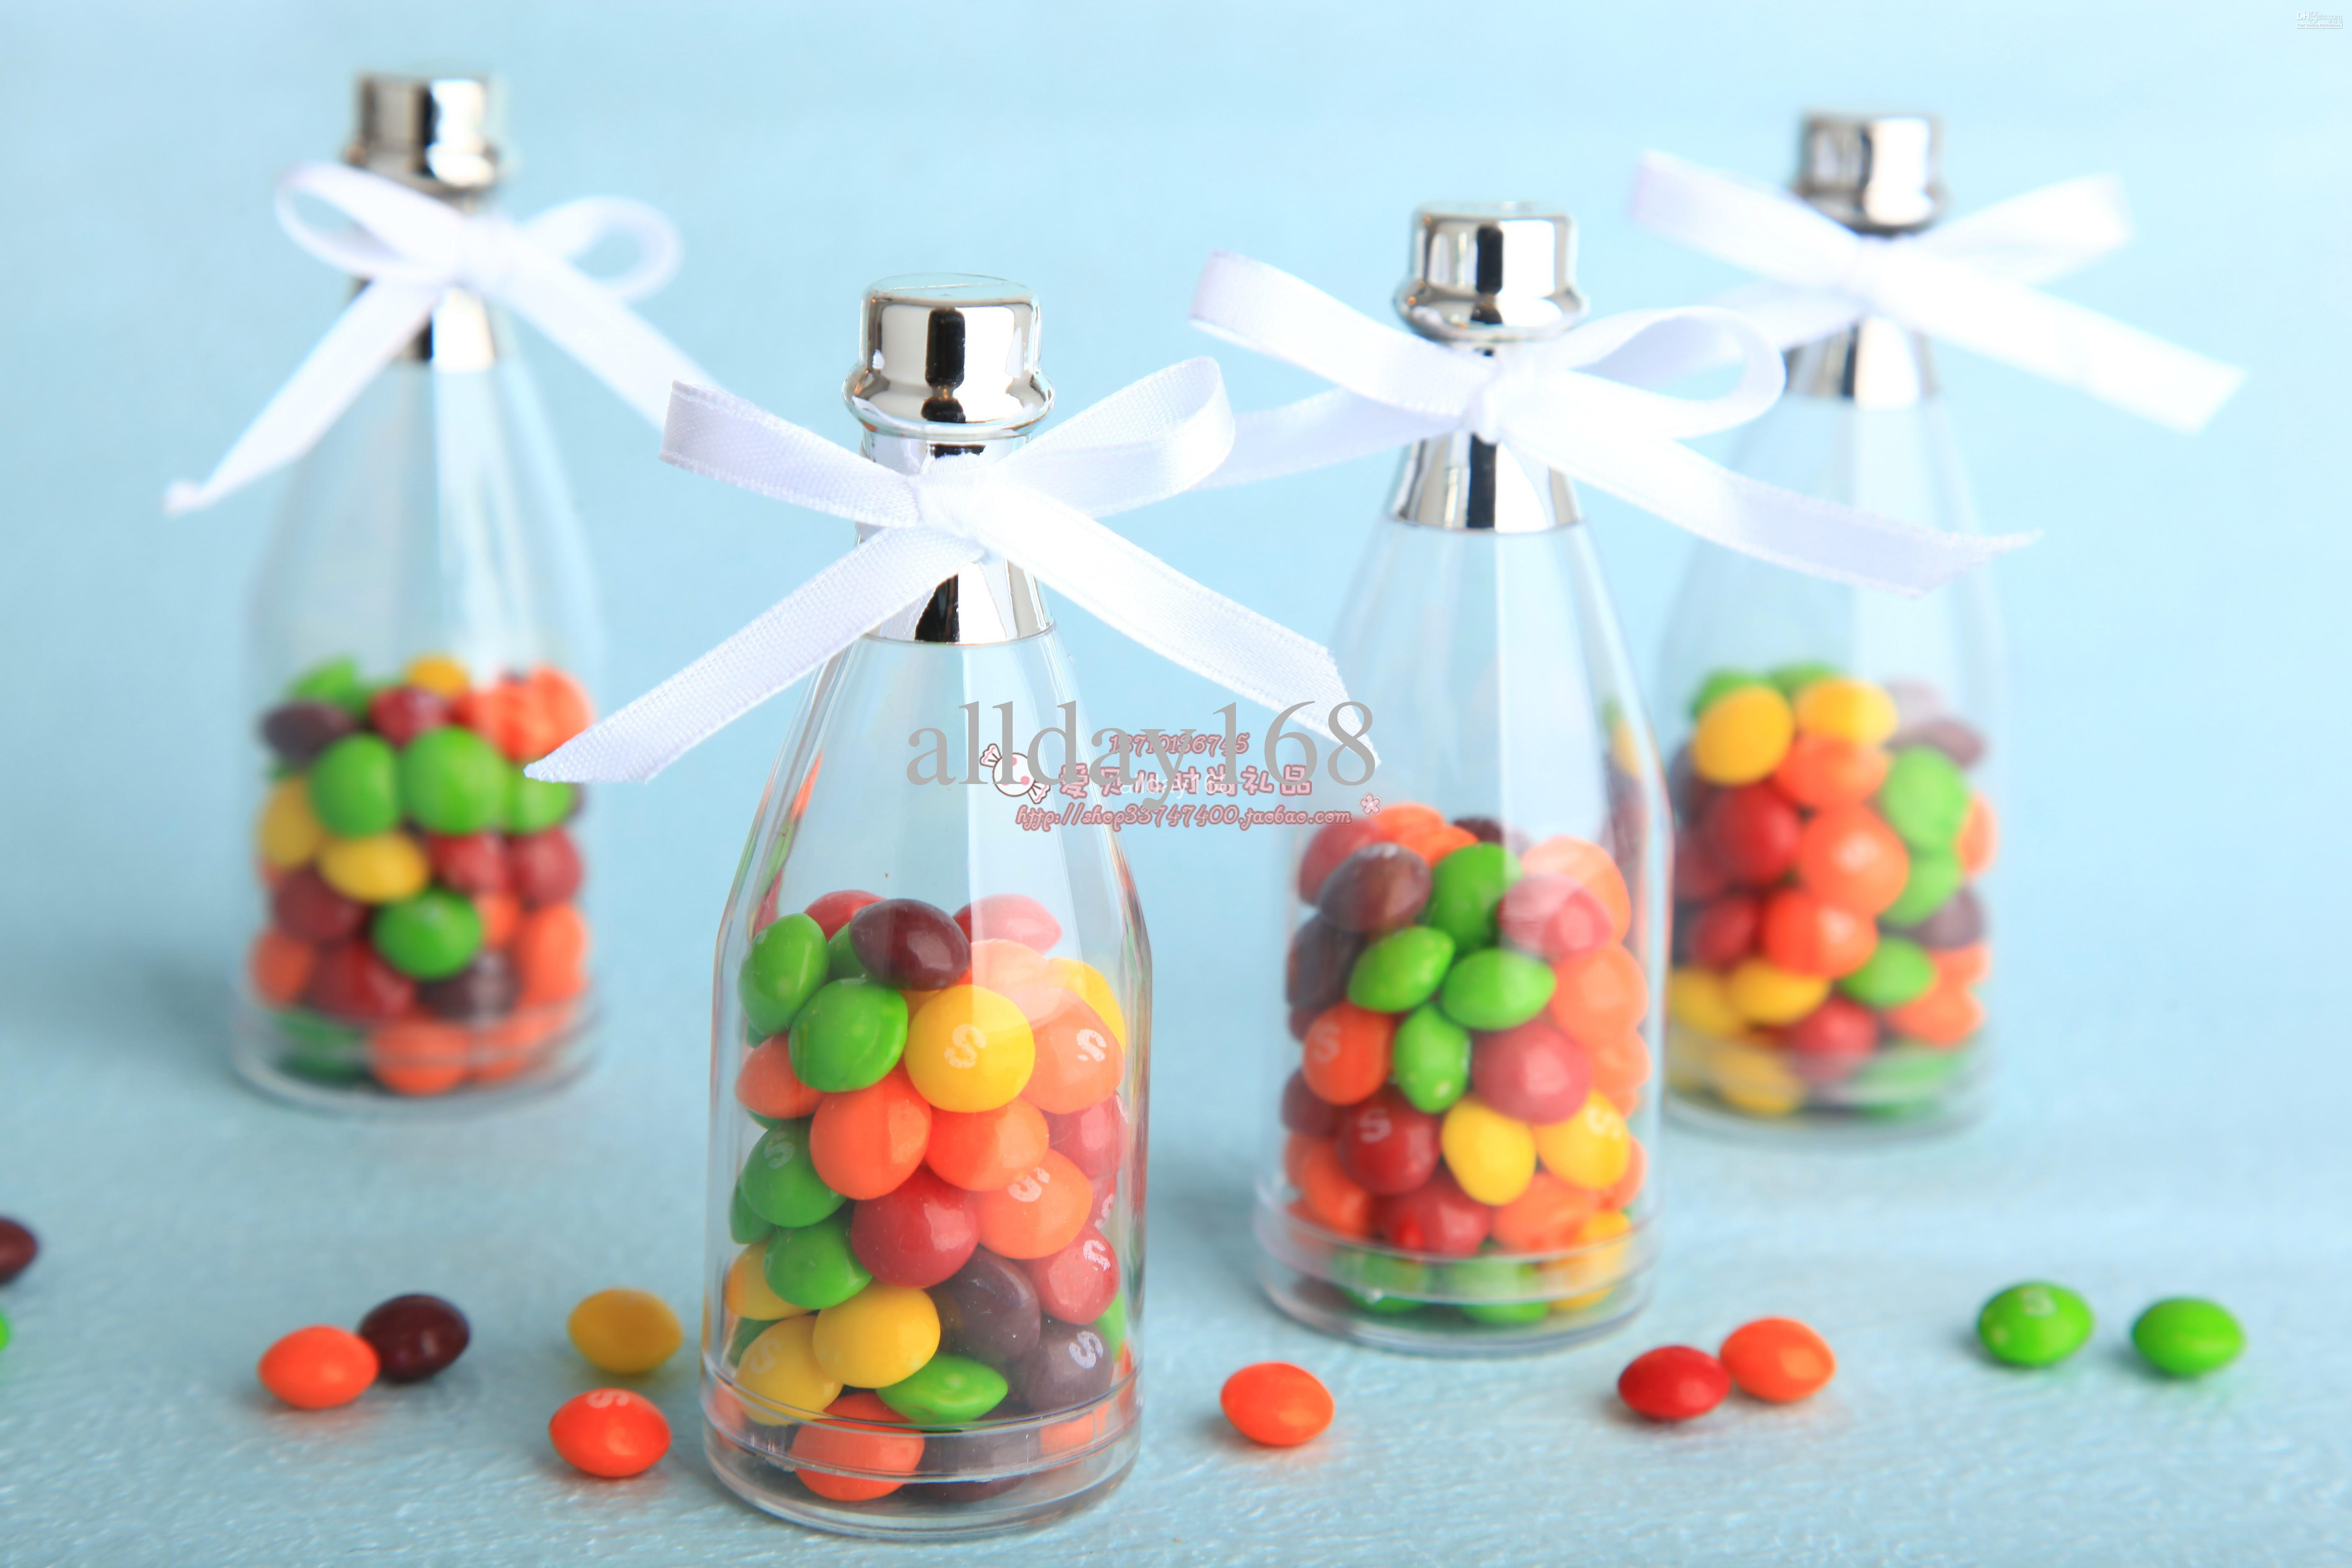 Wedding Favors Ch&agne Bottle Candy Box Gift Box Decorative Favor Boxes Discount Wedding Favor Boxes From Allday168 $33.3| Dhgate.Com : candy box ideas - Aboutintivar.Com